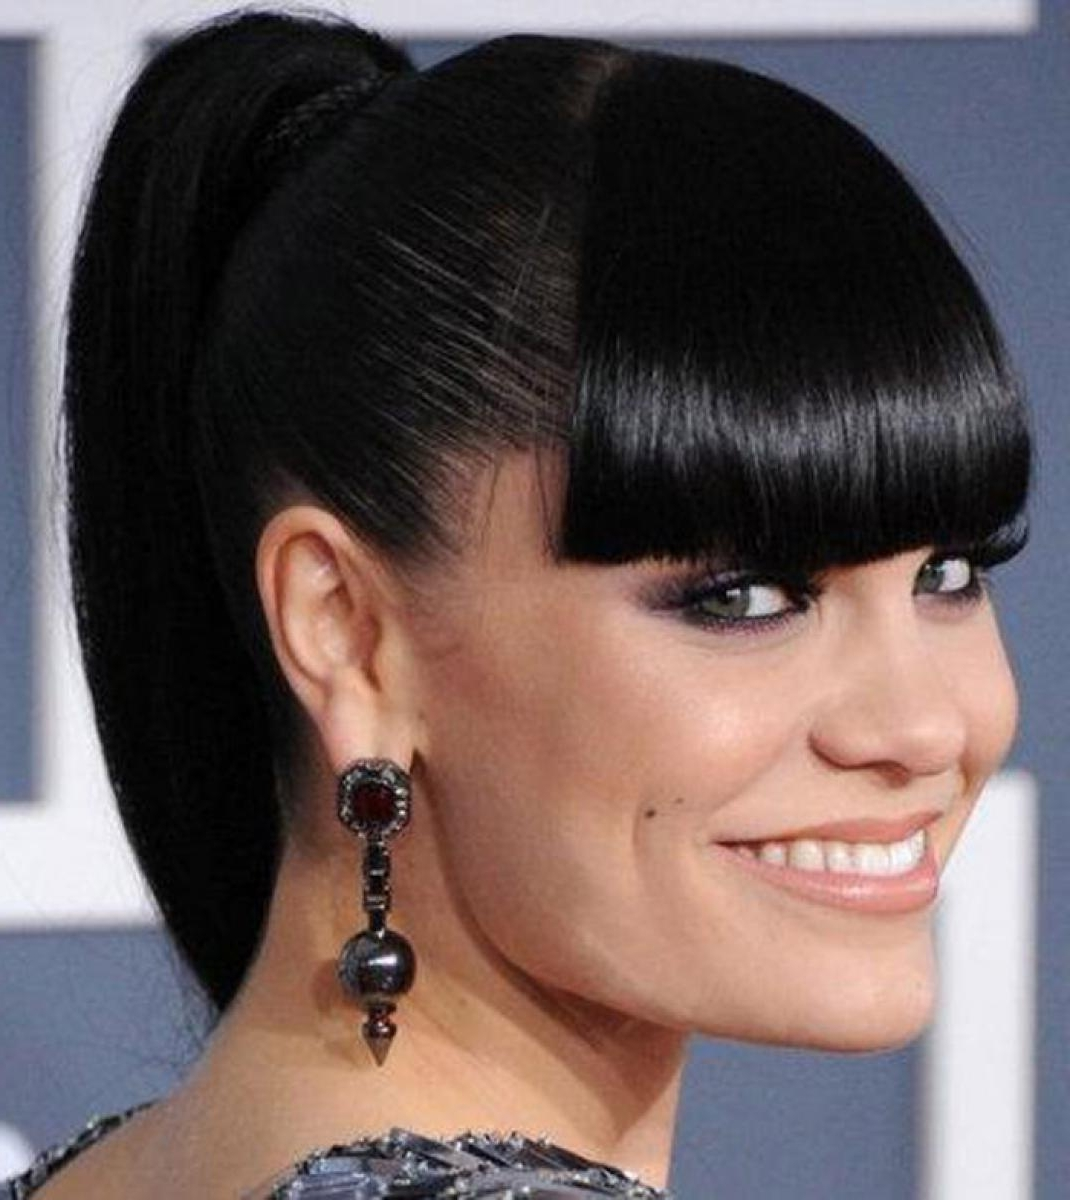 Current Low Black Ponytail Hairstyles With Bangs For Awesome Drawstring Ponytail Hairstyles For Black Hair – Hairstyles Ideas (View 12 of 20)